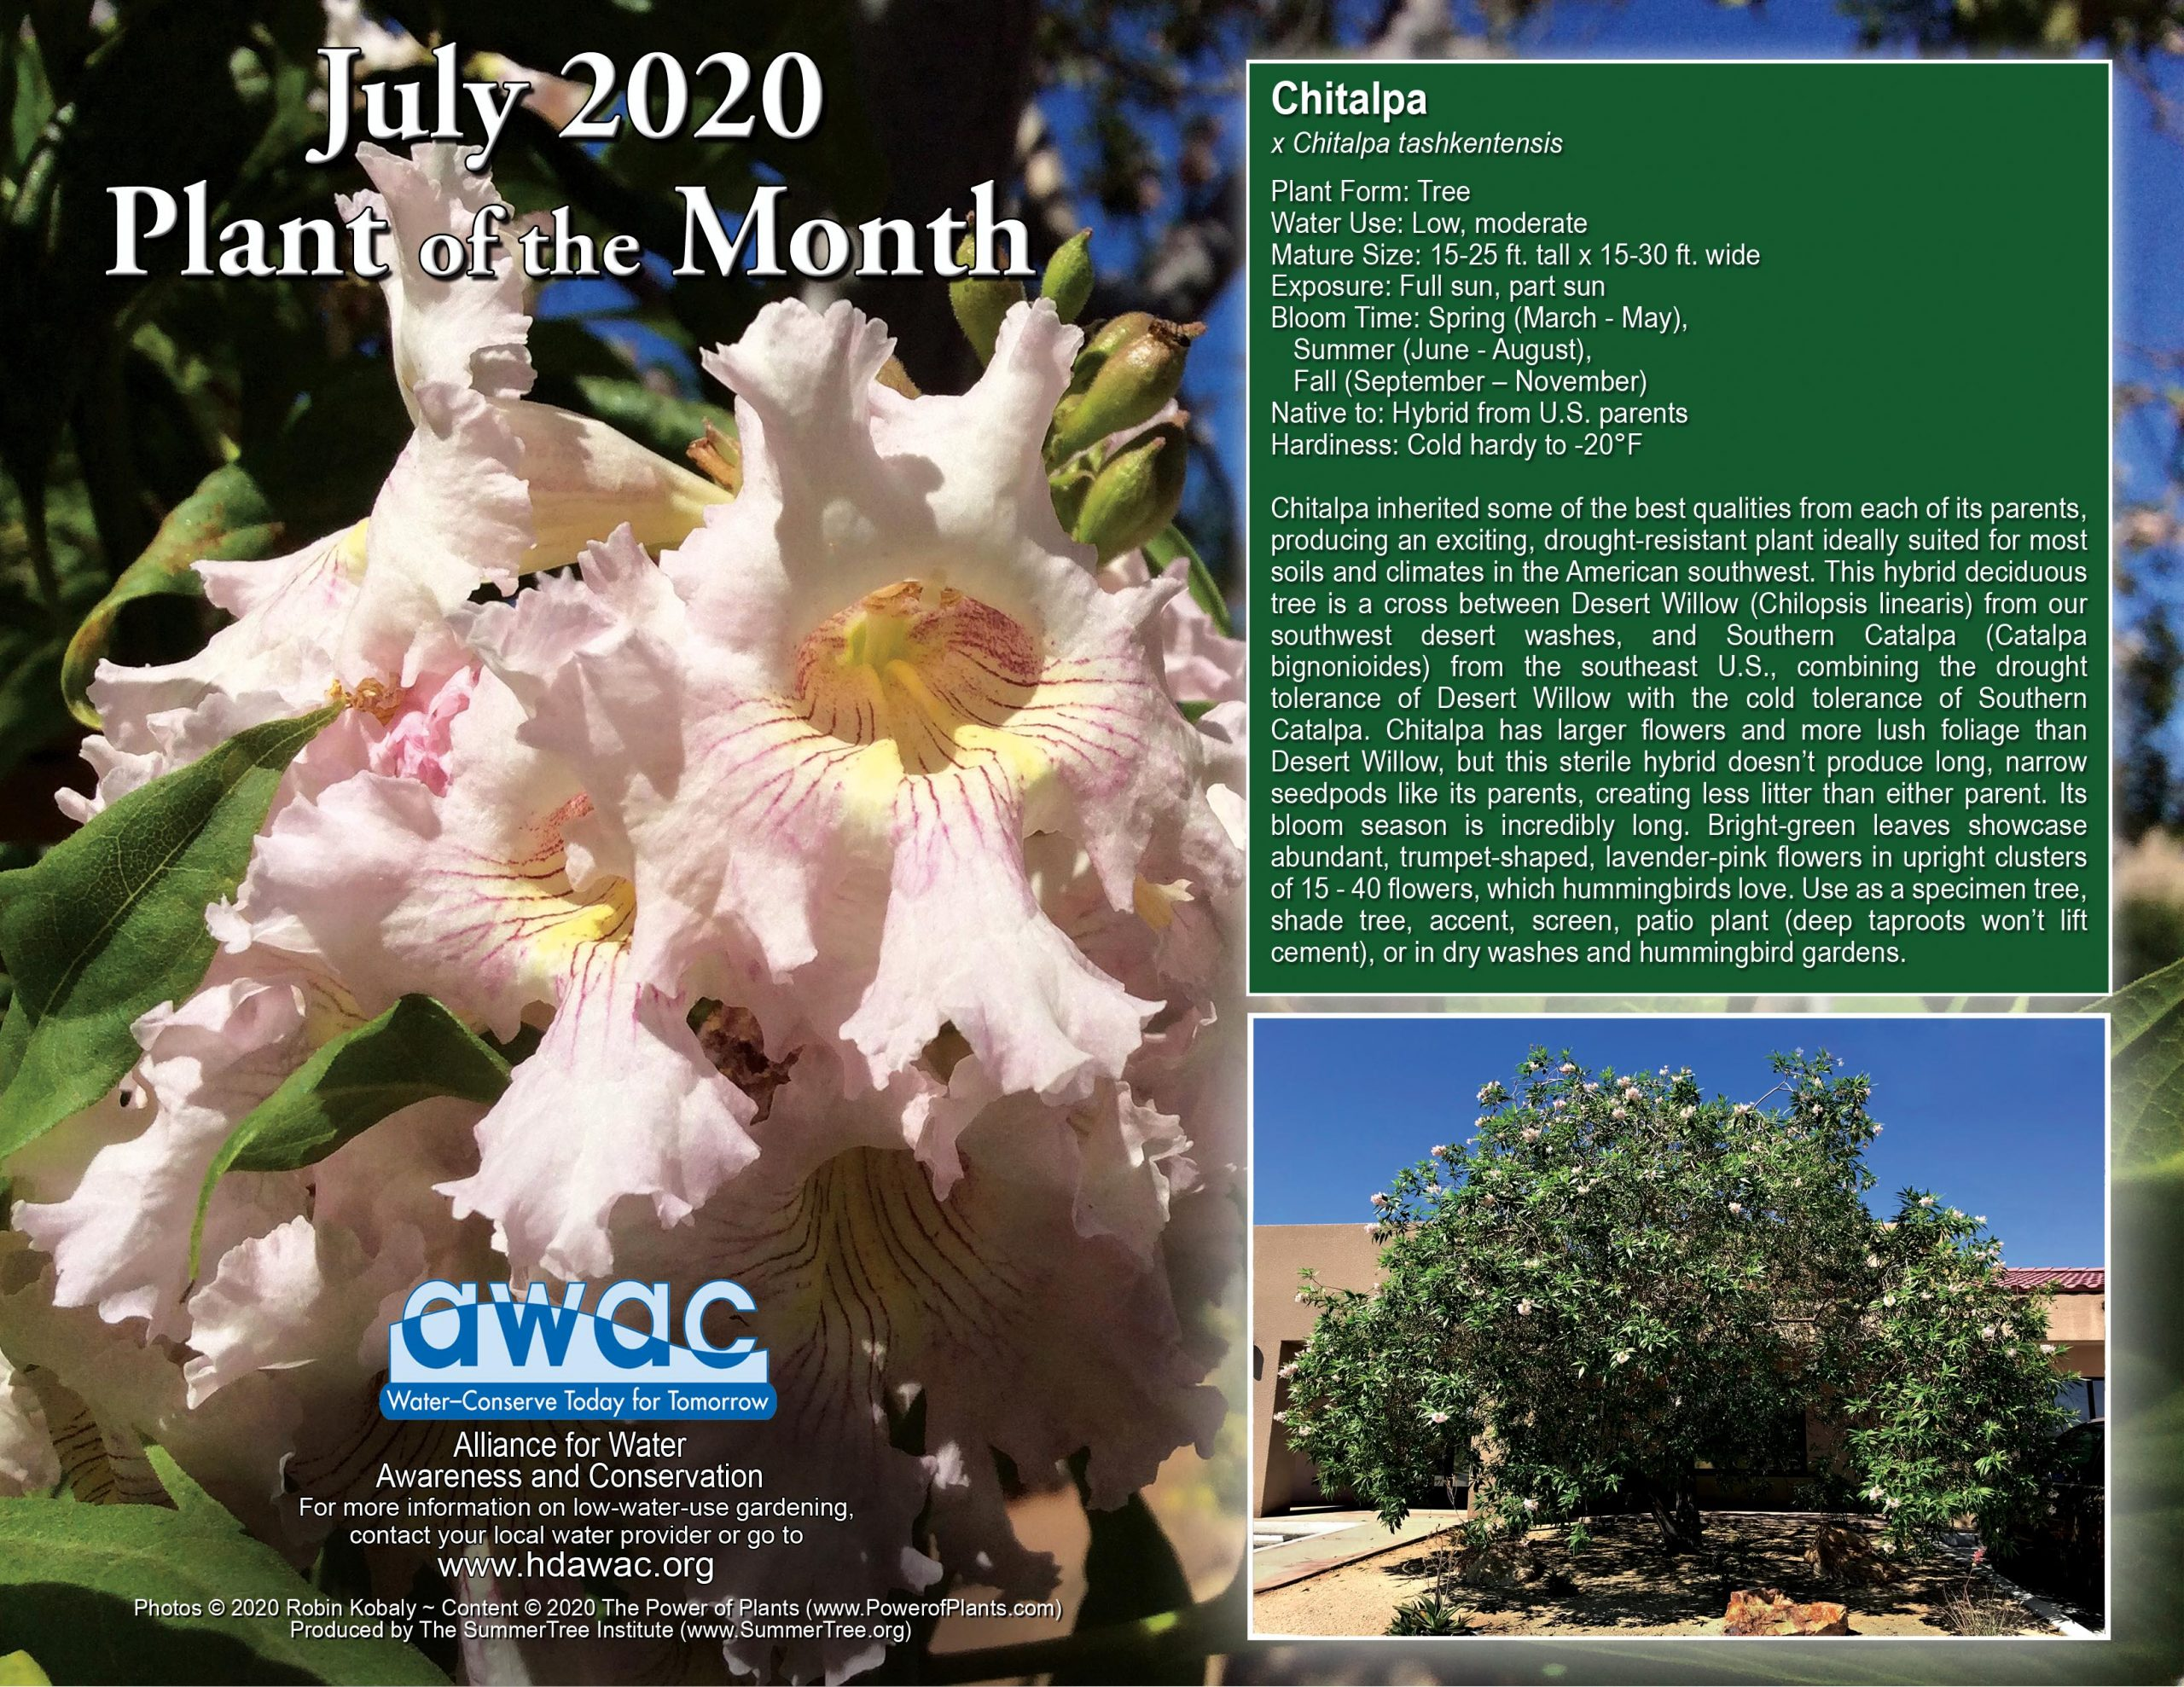 AWAC July 2020 Plant of the Month